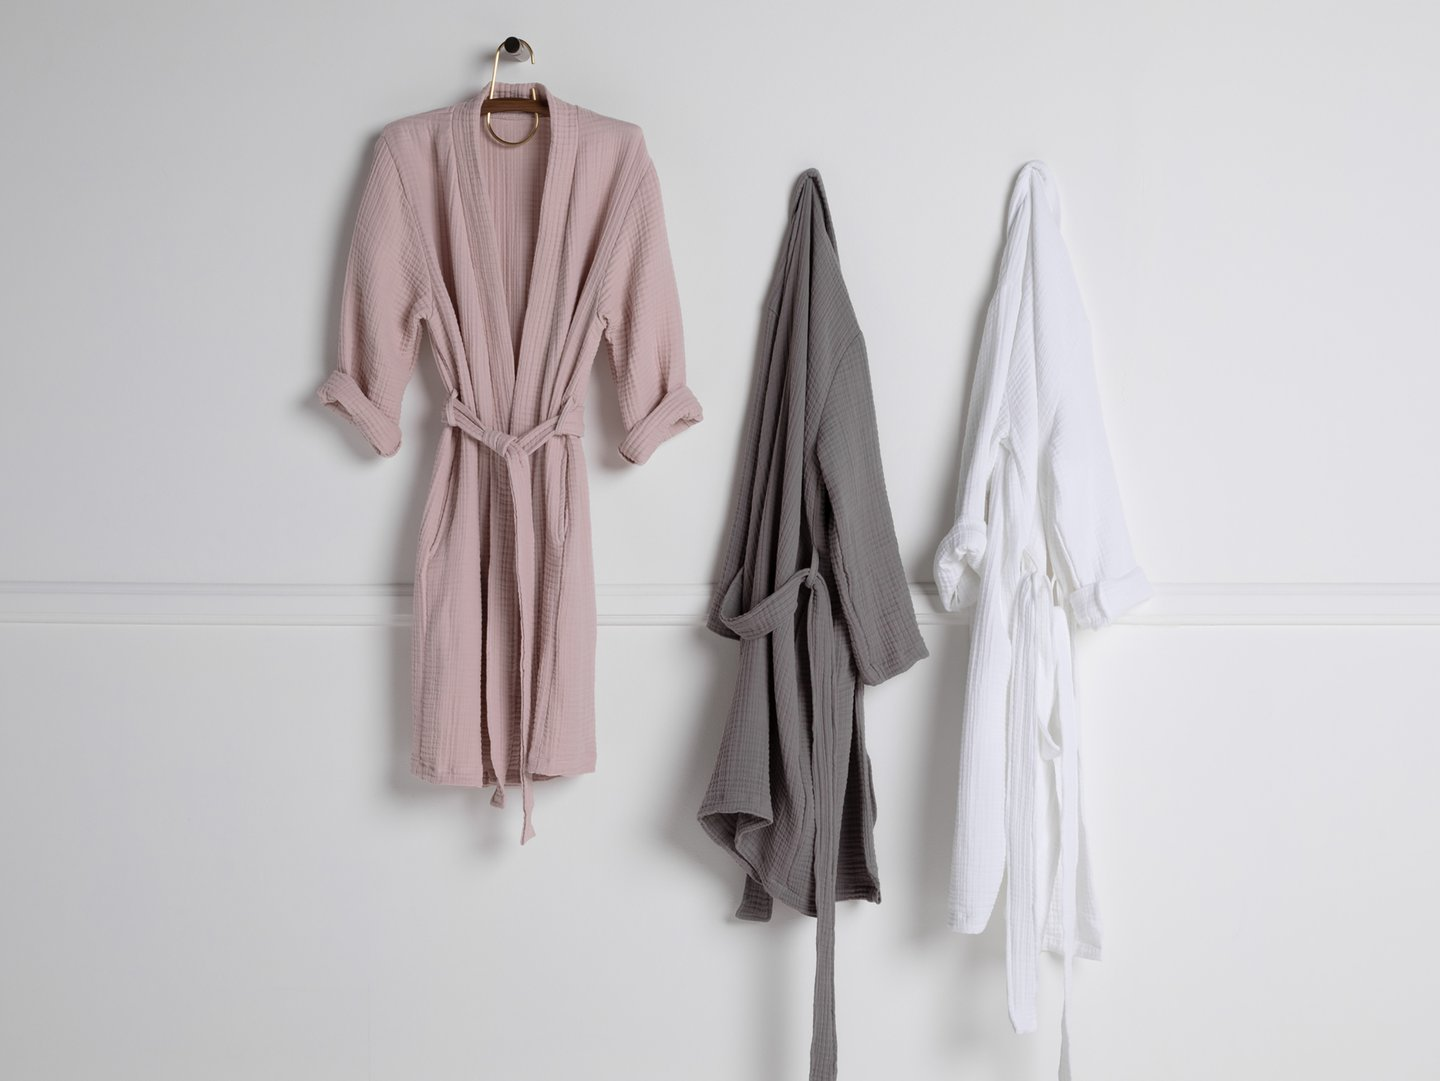 Cloud Cotton Robe - $99